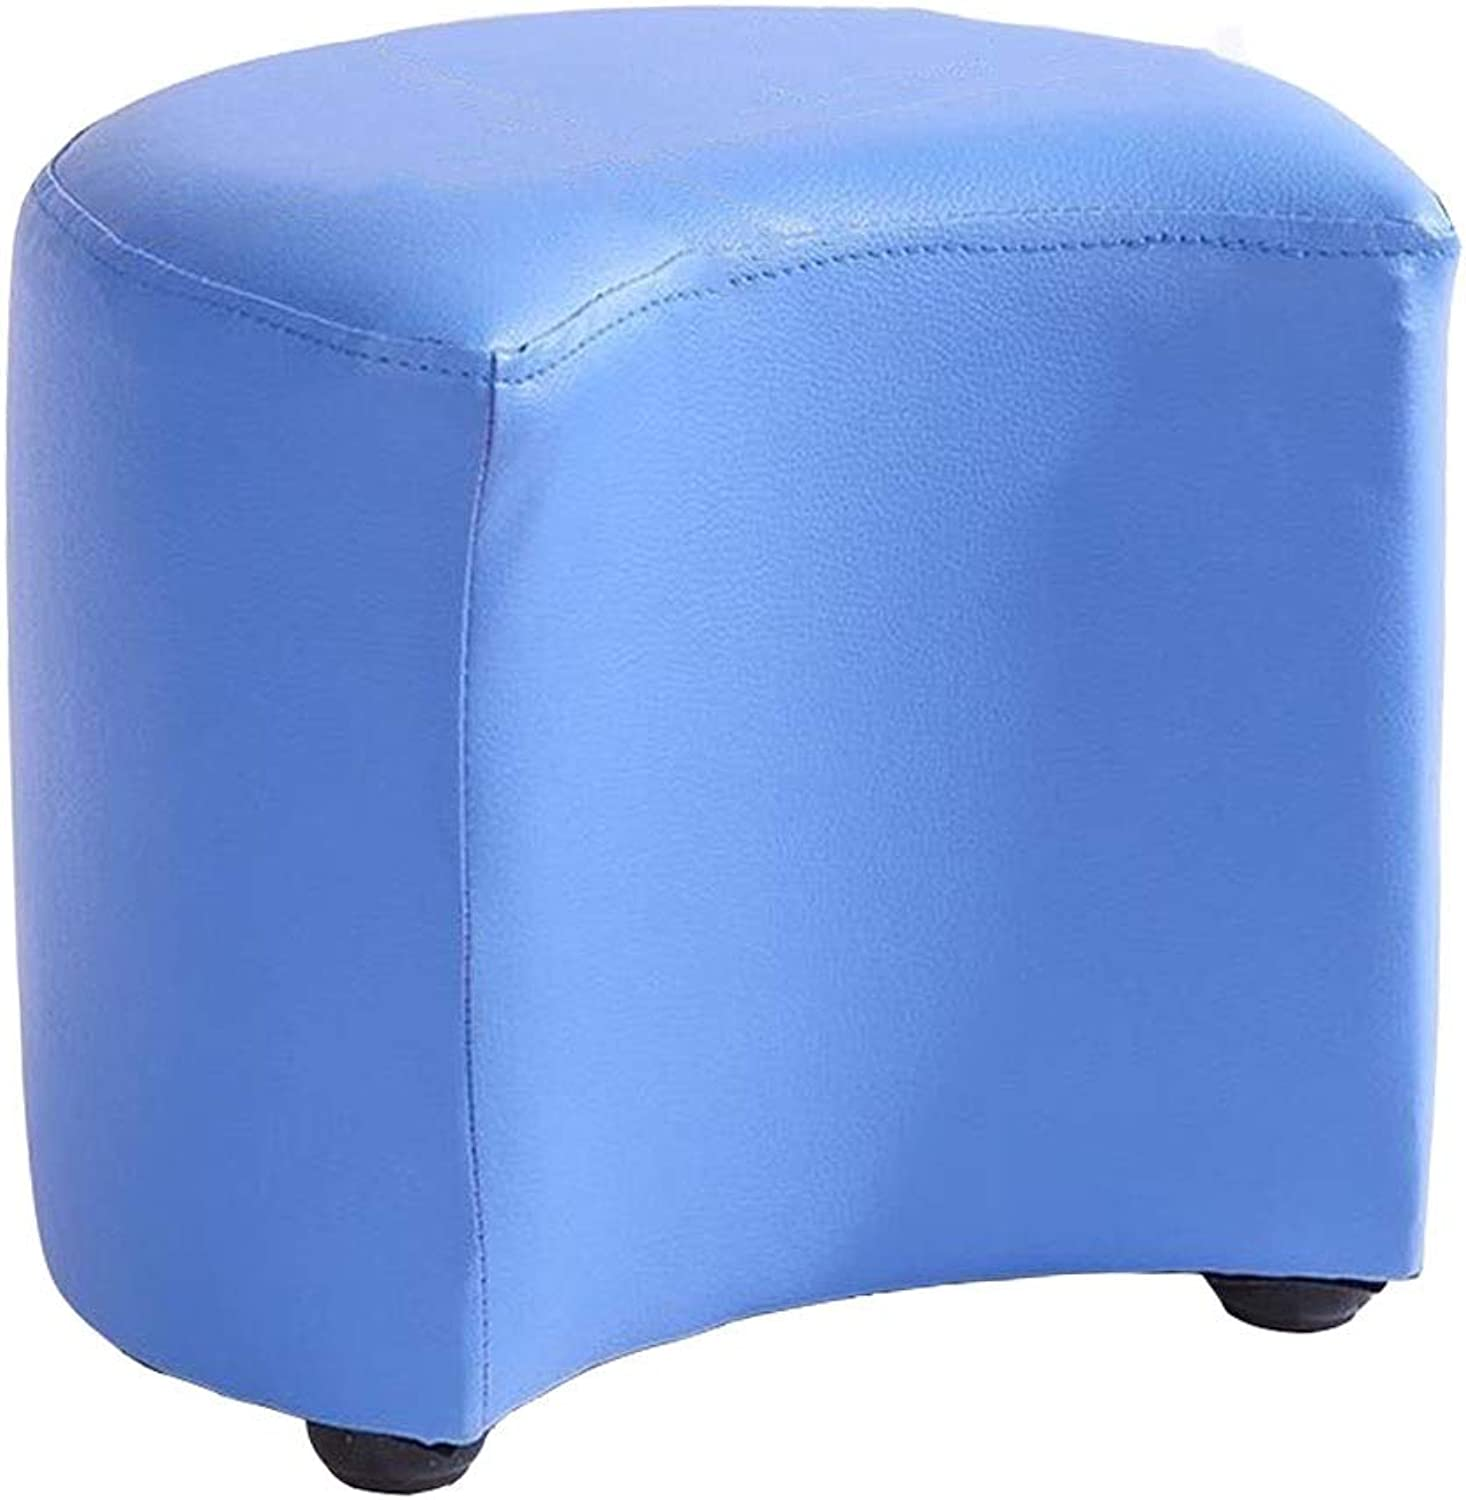 Dall Footstool shoes Bench Upholstered Modern Home Sofa Stool Wood Frame PU Seat Living Room,12 colors (color   bluee1, Size   31×21×18cm)